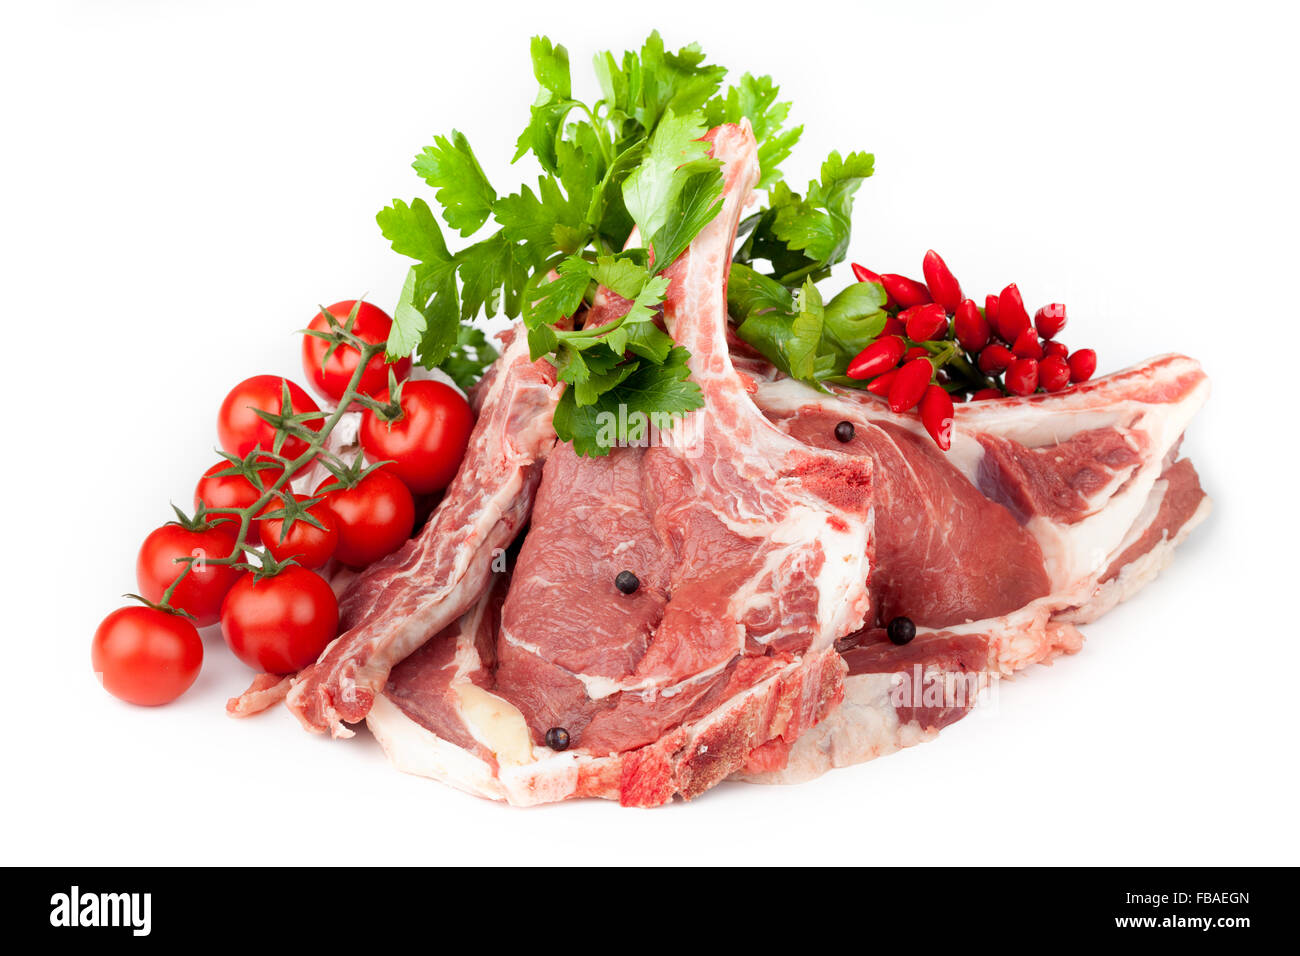 Florentine Steaks - Stock Image